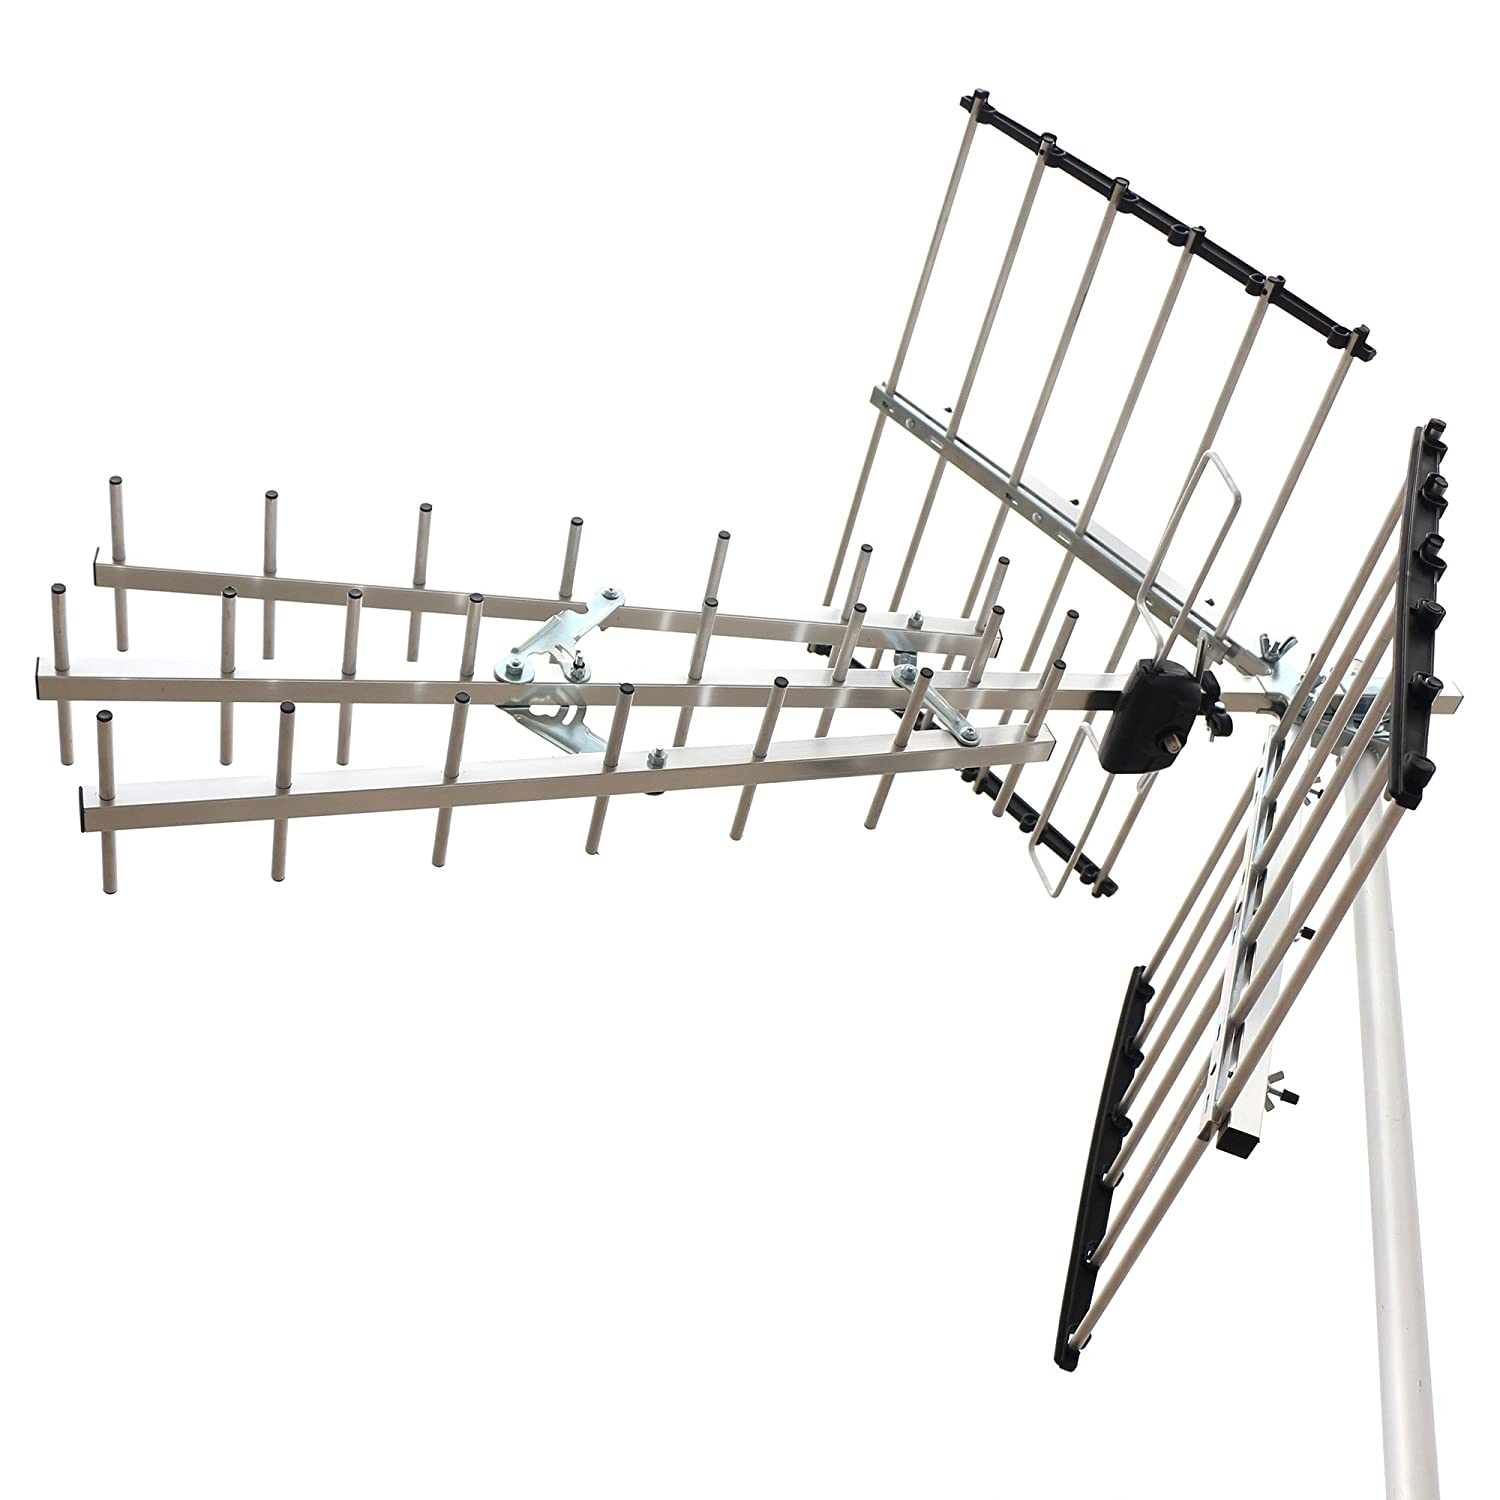 4. 1byone Digital Attic/Outdoor With J Pole Mount